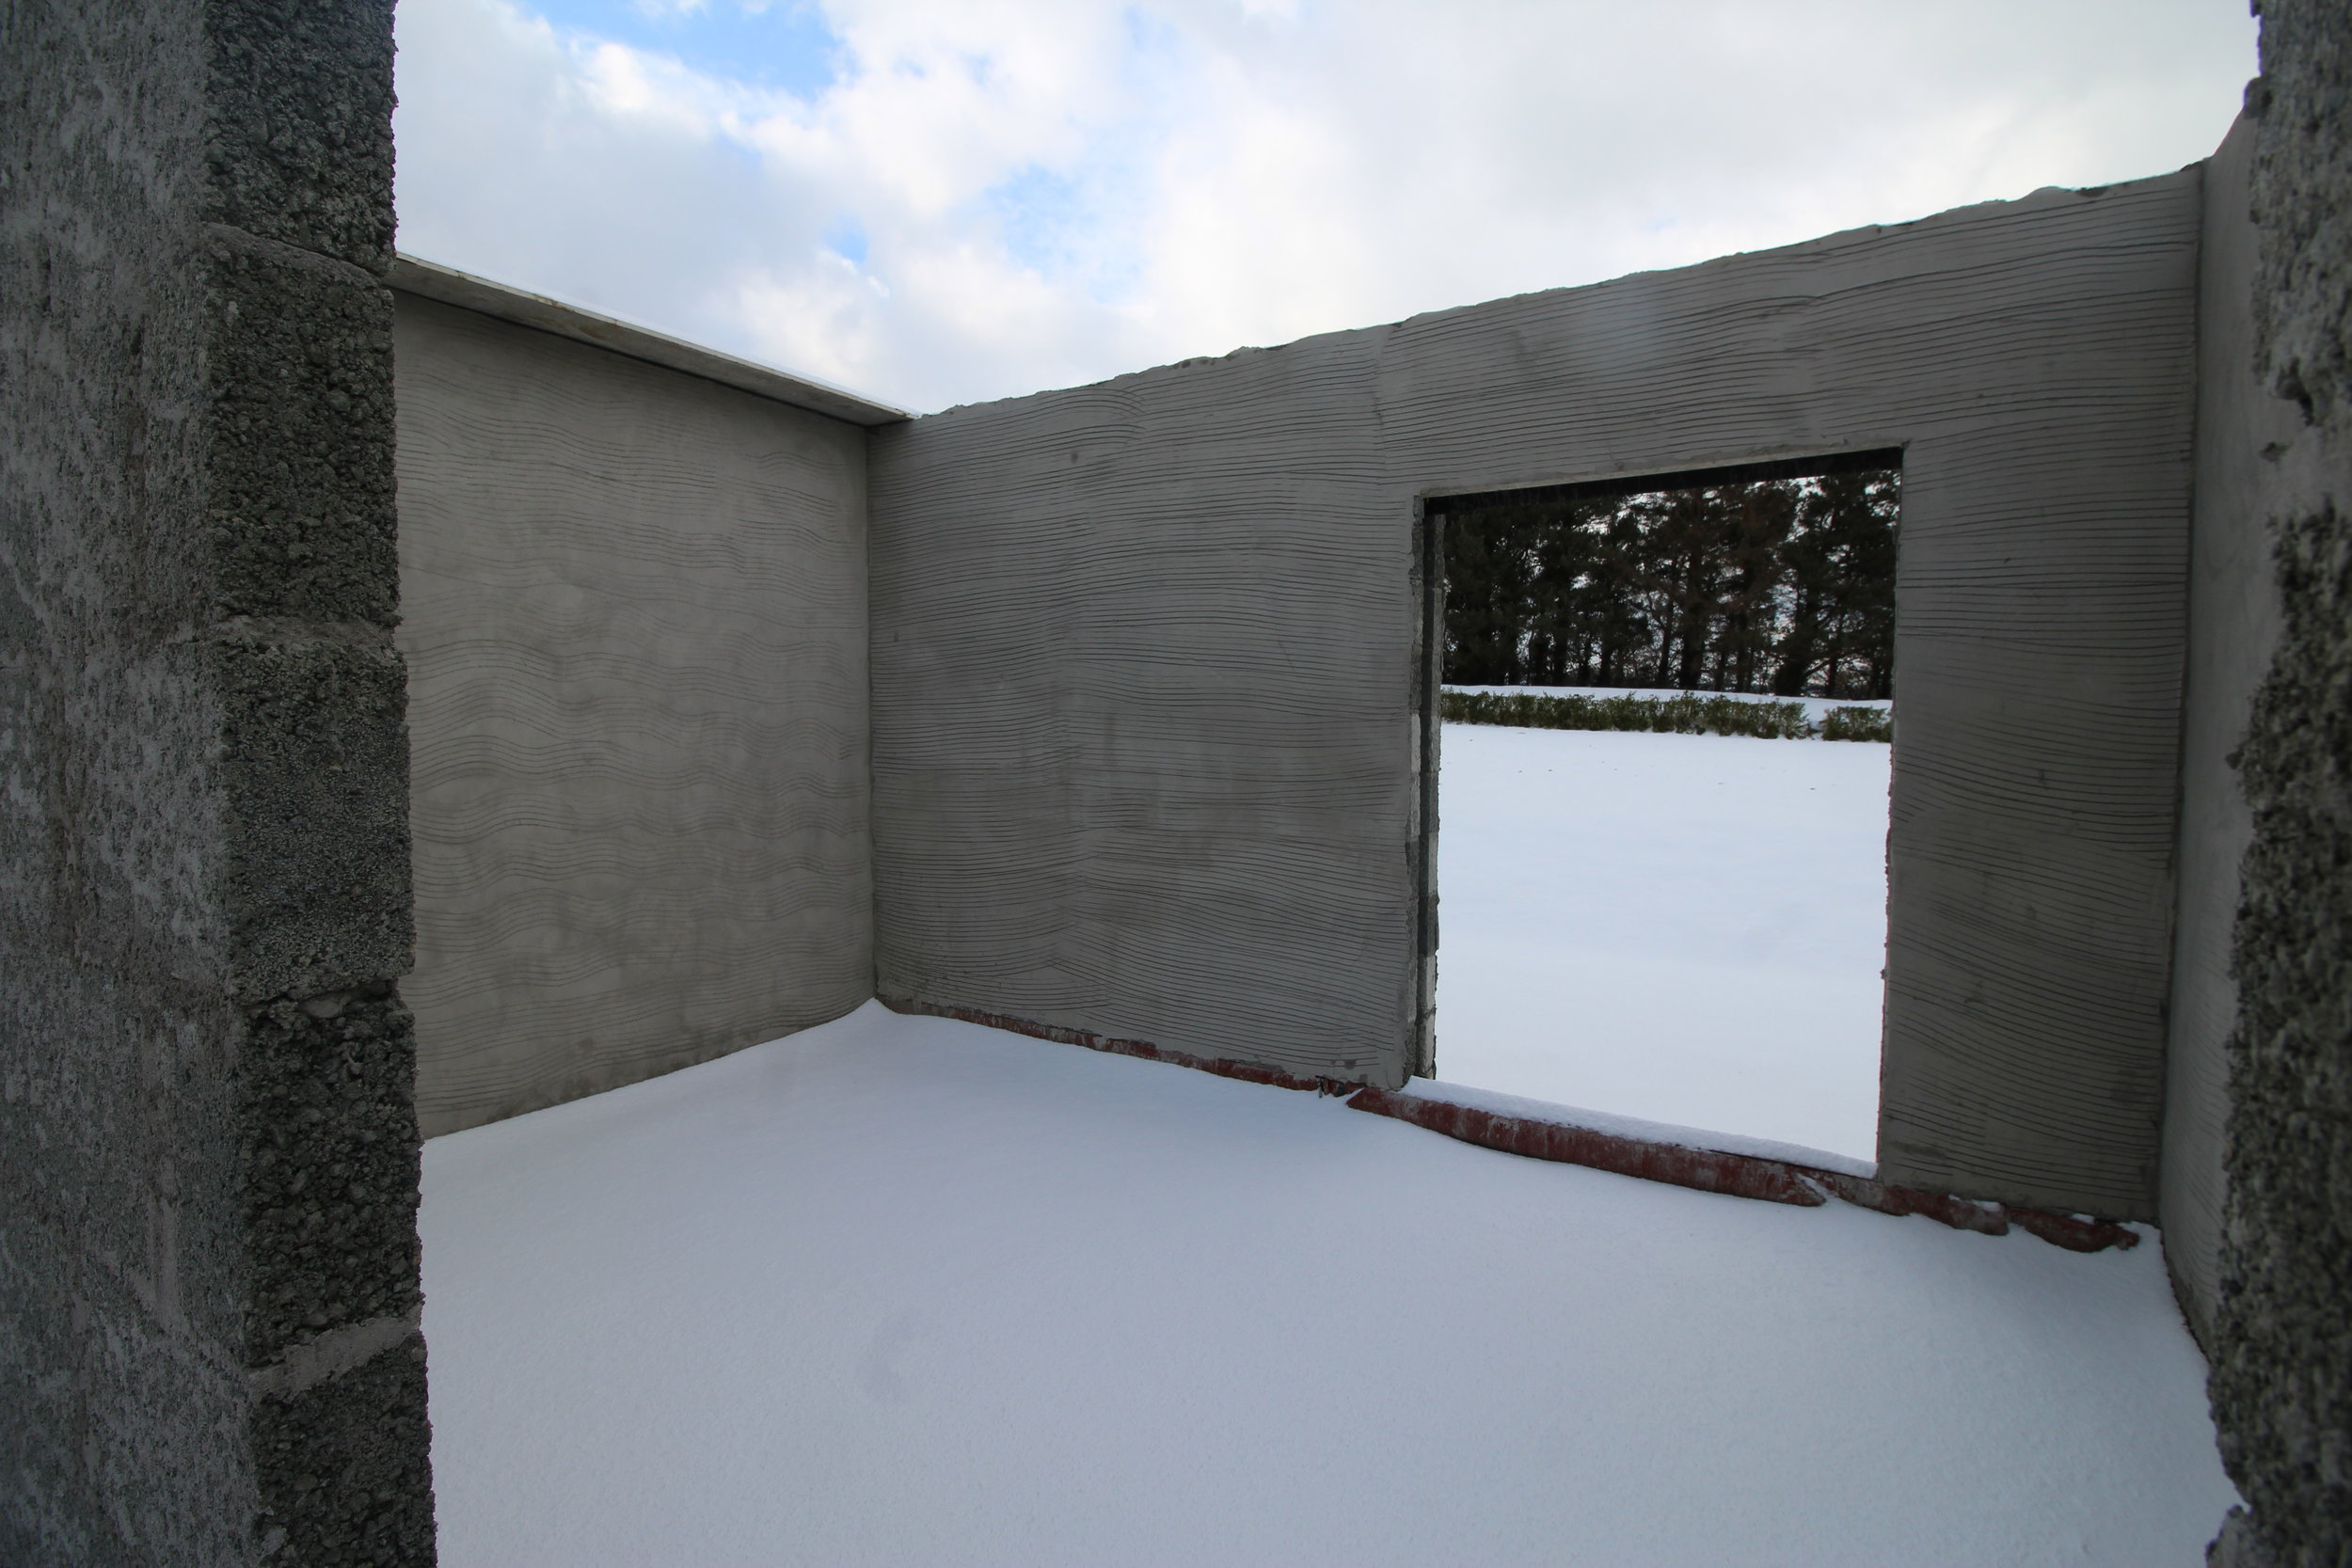 New build flooring covered in snow